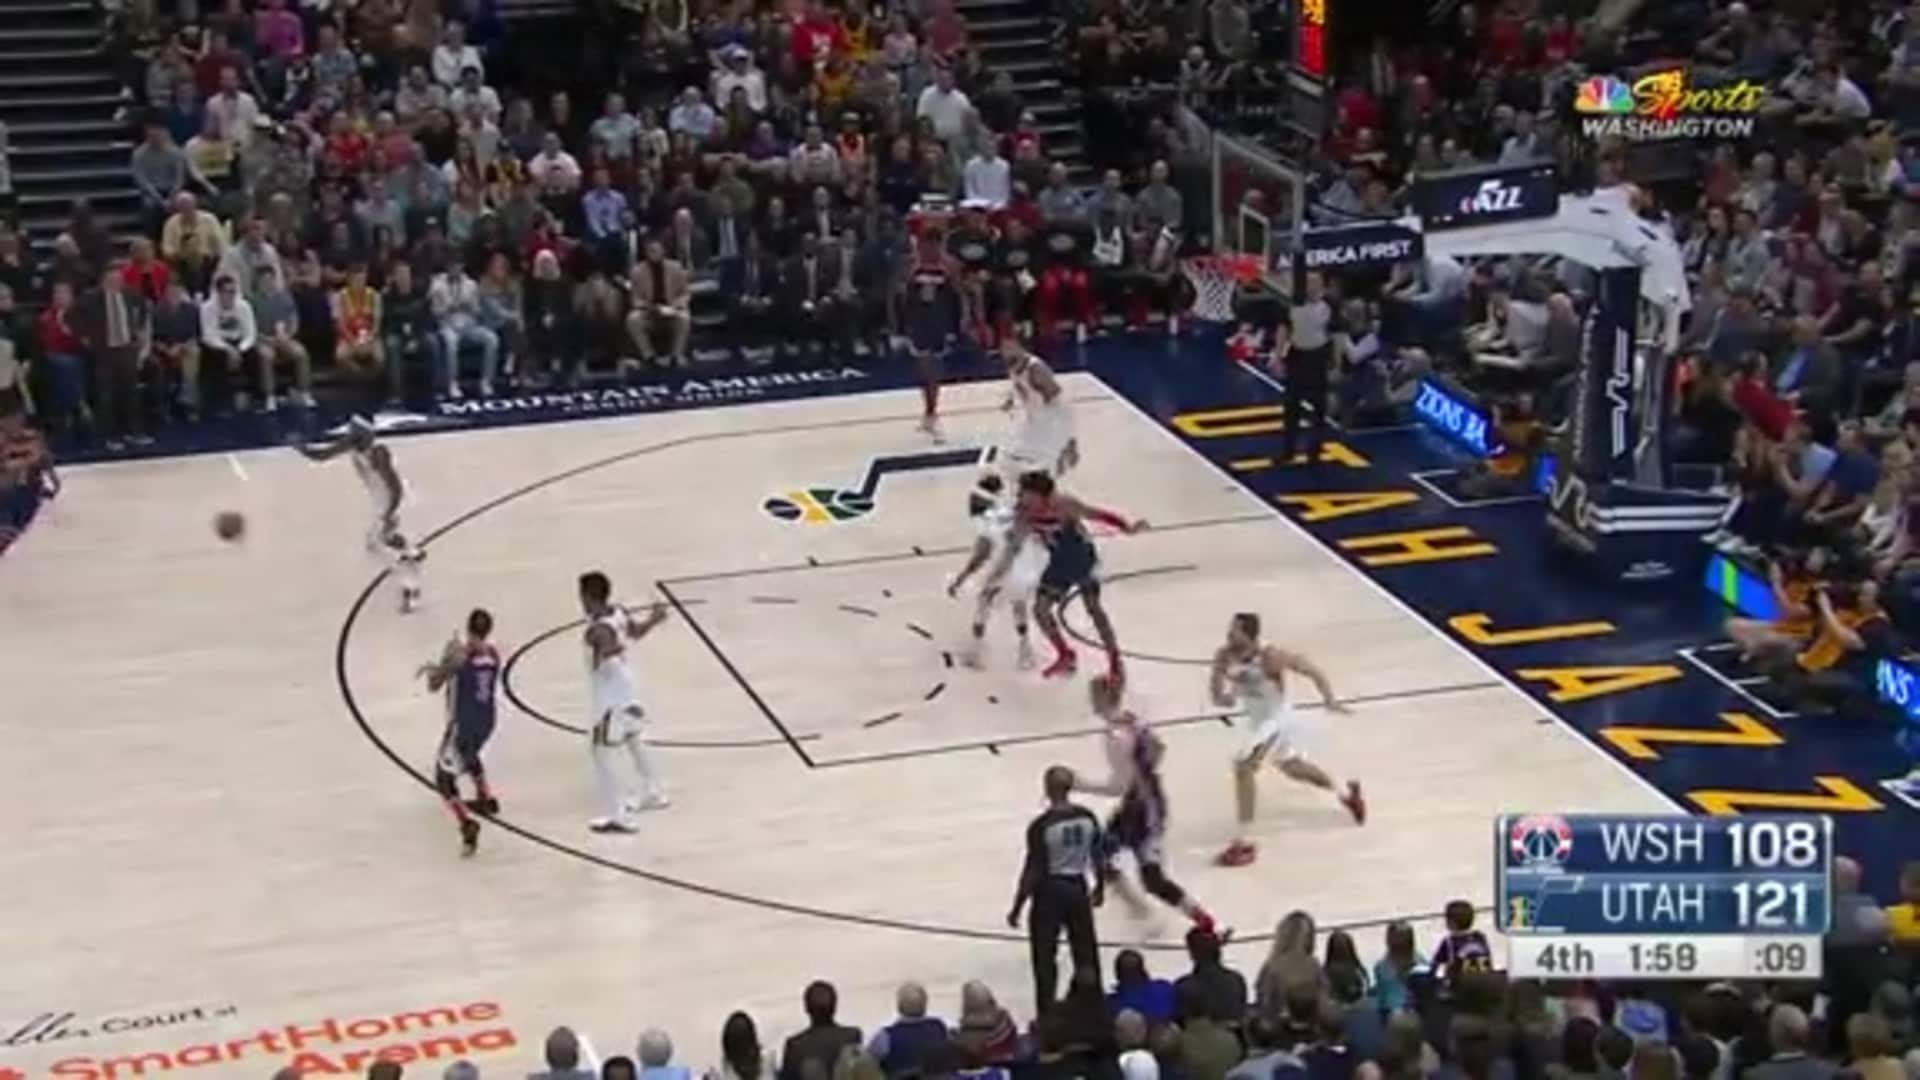 Highlights: Bradley Beal vs. Jazz - 02/28/20